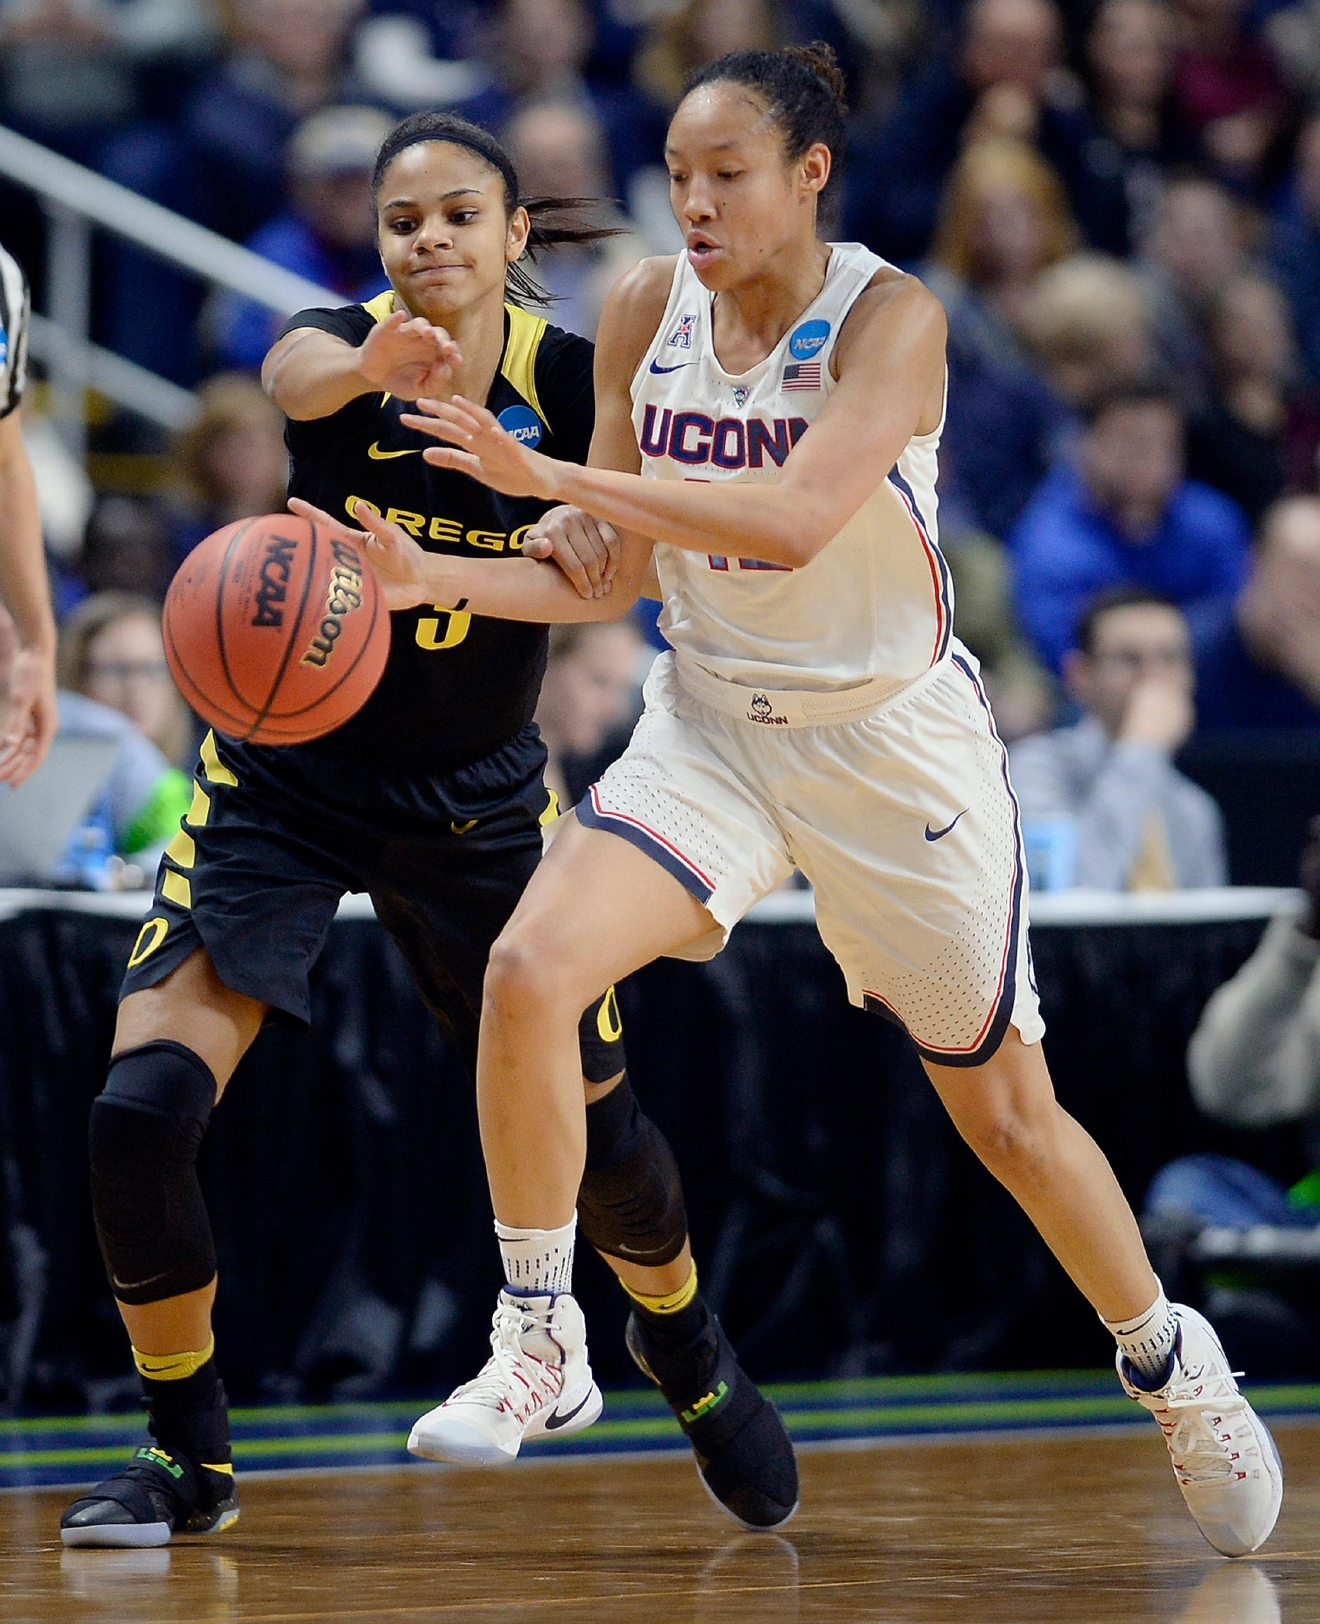 Connecticut's Saniya Chong, right, steals the ball from Oregon's Justine Hall, left, during the first half of a regional final game in the NCAA women's college basketball tournament, Monday, March 27, 2017, in Bridgeport, Conn. (AP Photo/Jessica Hill)